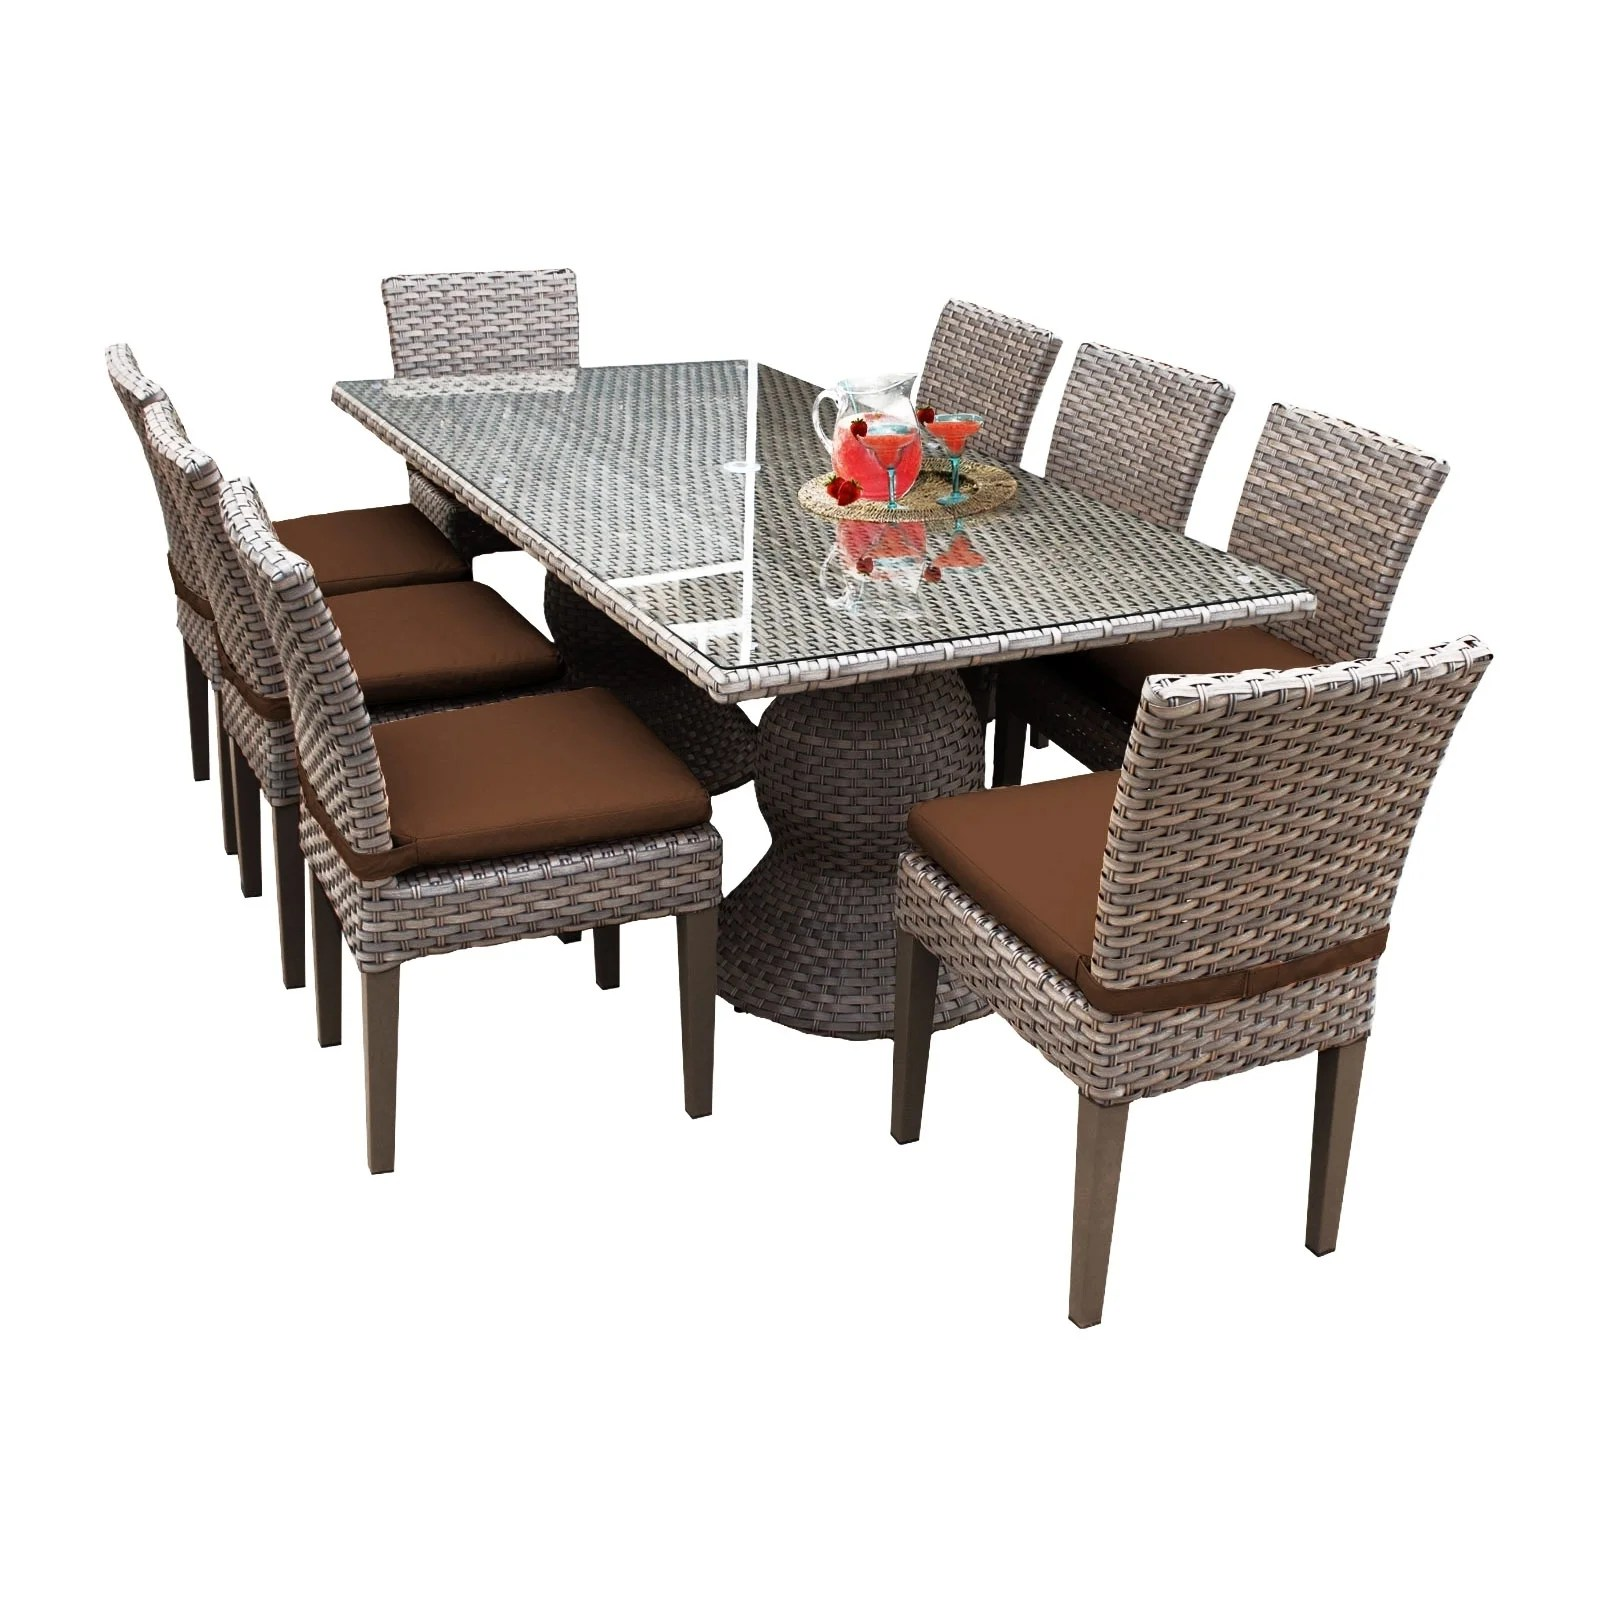 5 Bar Square Table Wicker Rattan Outdoor Tempered Glass As Dinning Coffer Table Kinbor Patio Bar Height Chairs Patio Furniture Accessories Patio Lawn Garden